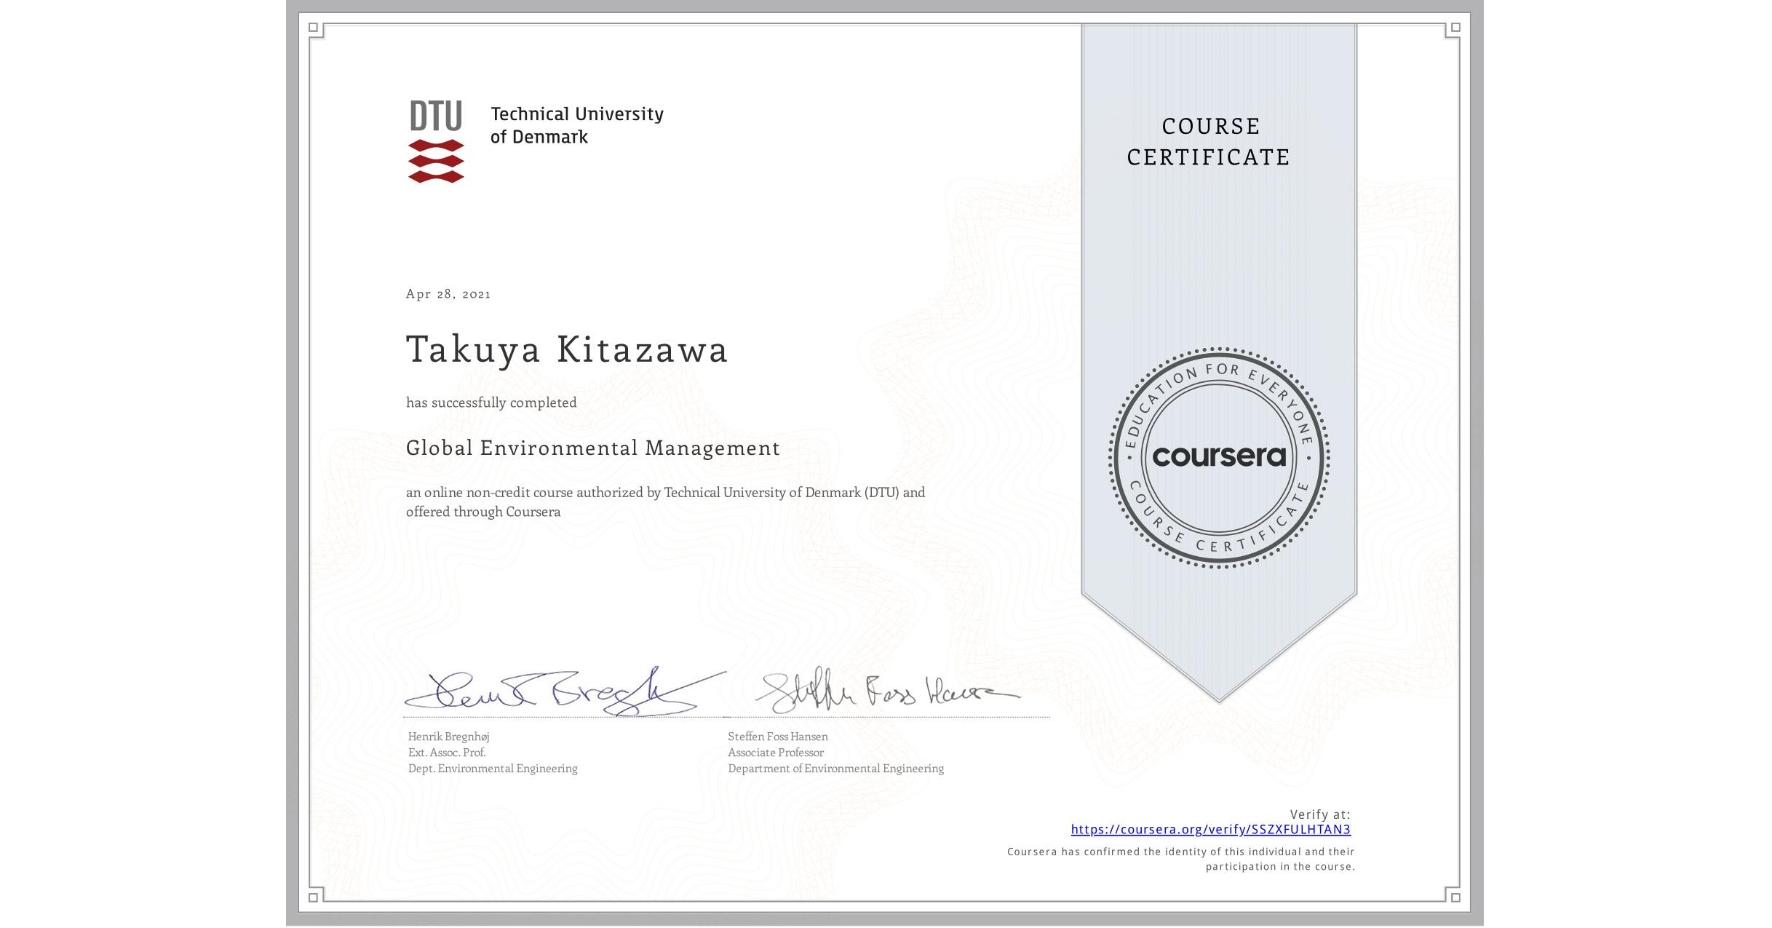 View certificate for Takuya Kitazawa, Global Environmental Management, an online non-credit course authorized by Technical University of Denmark (DTU) and offered through Coursera